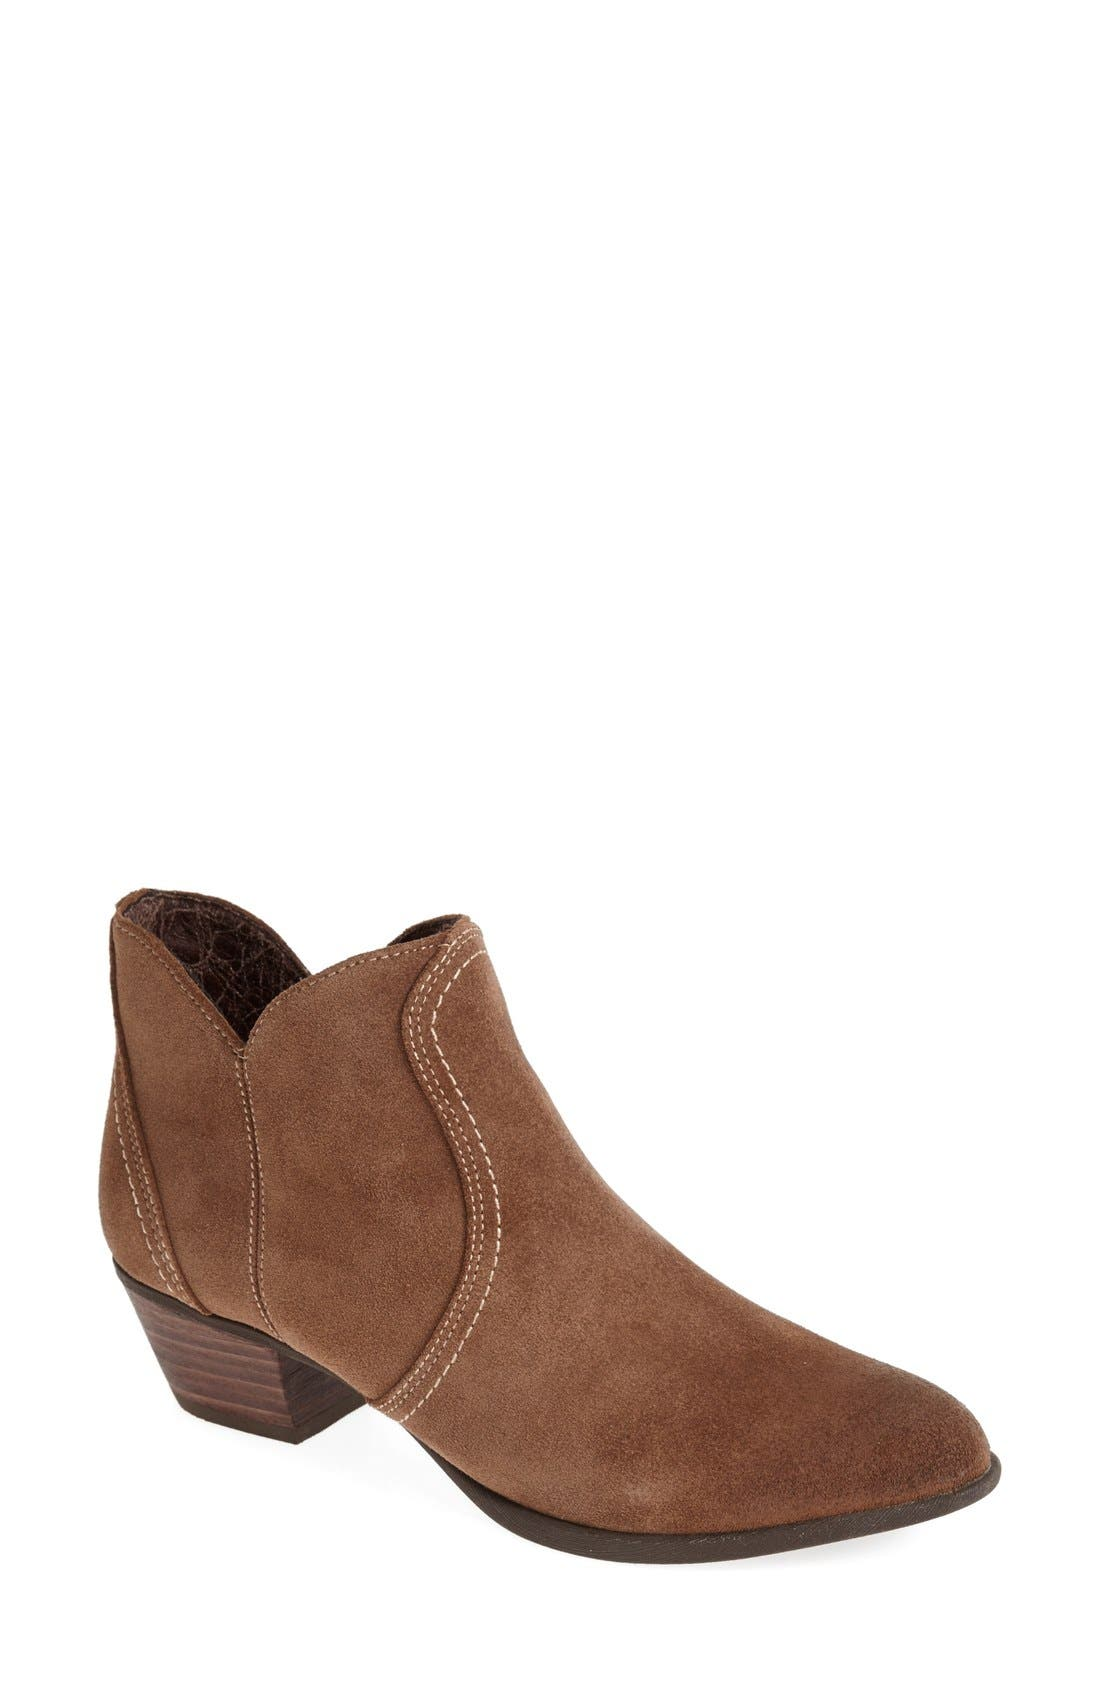 'Astor' Suede Ankle Bootie,                             Main thumbnail 1, color,                             201